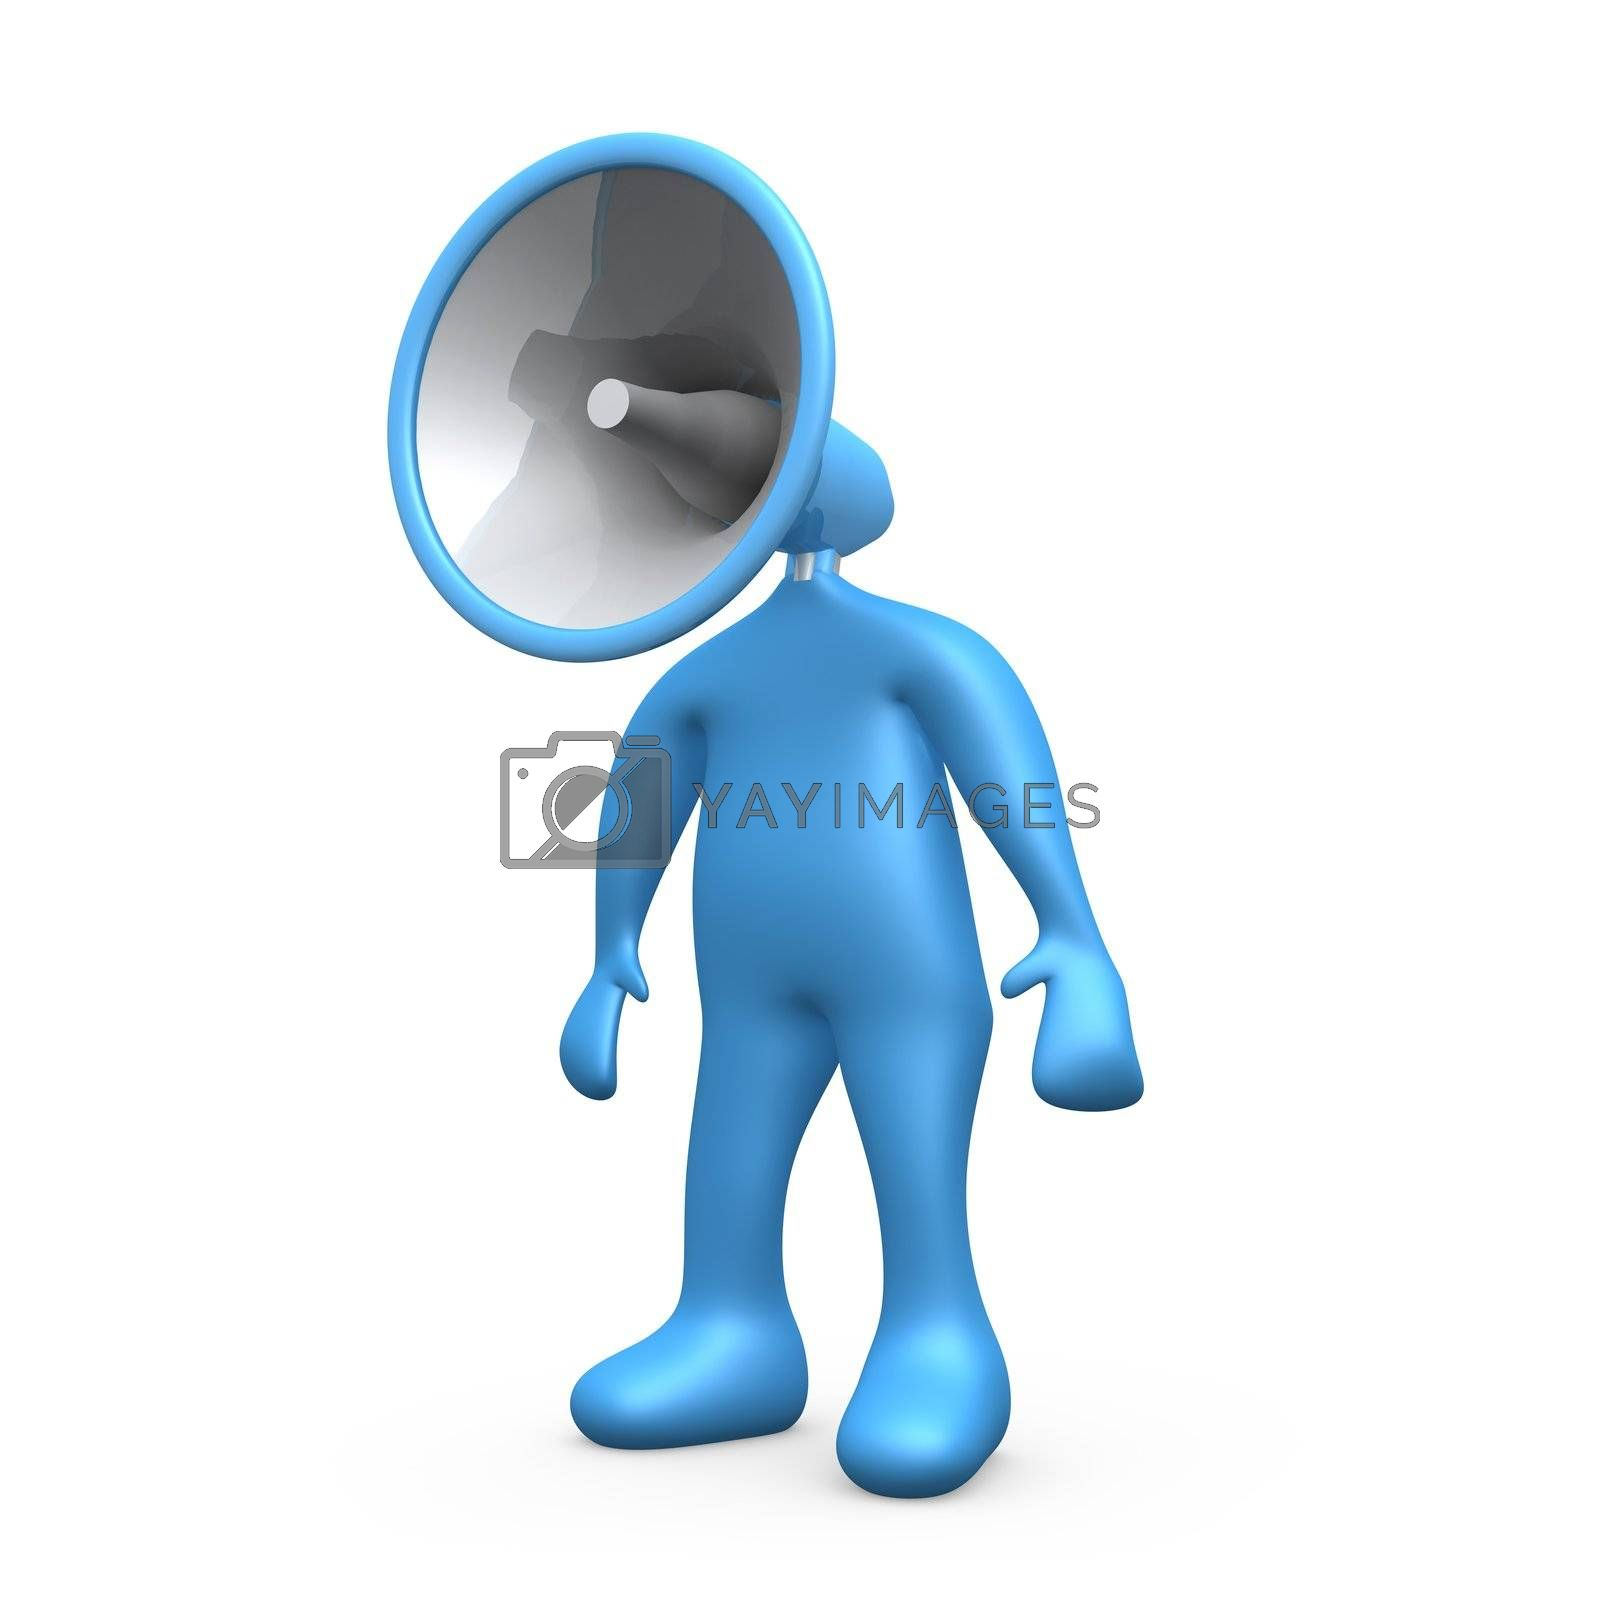 Computer generated image - Megaphone Person .